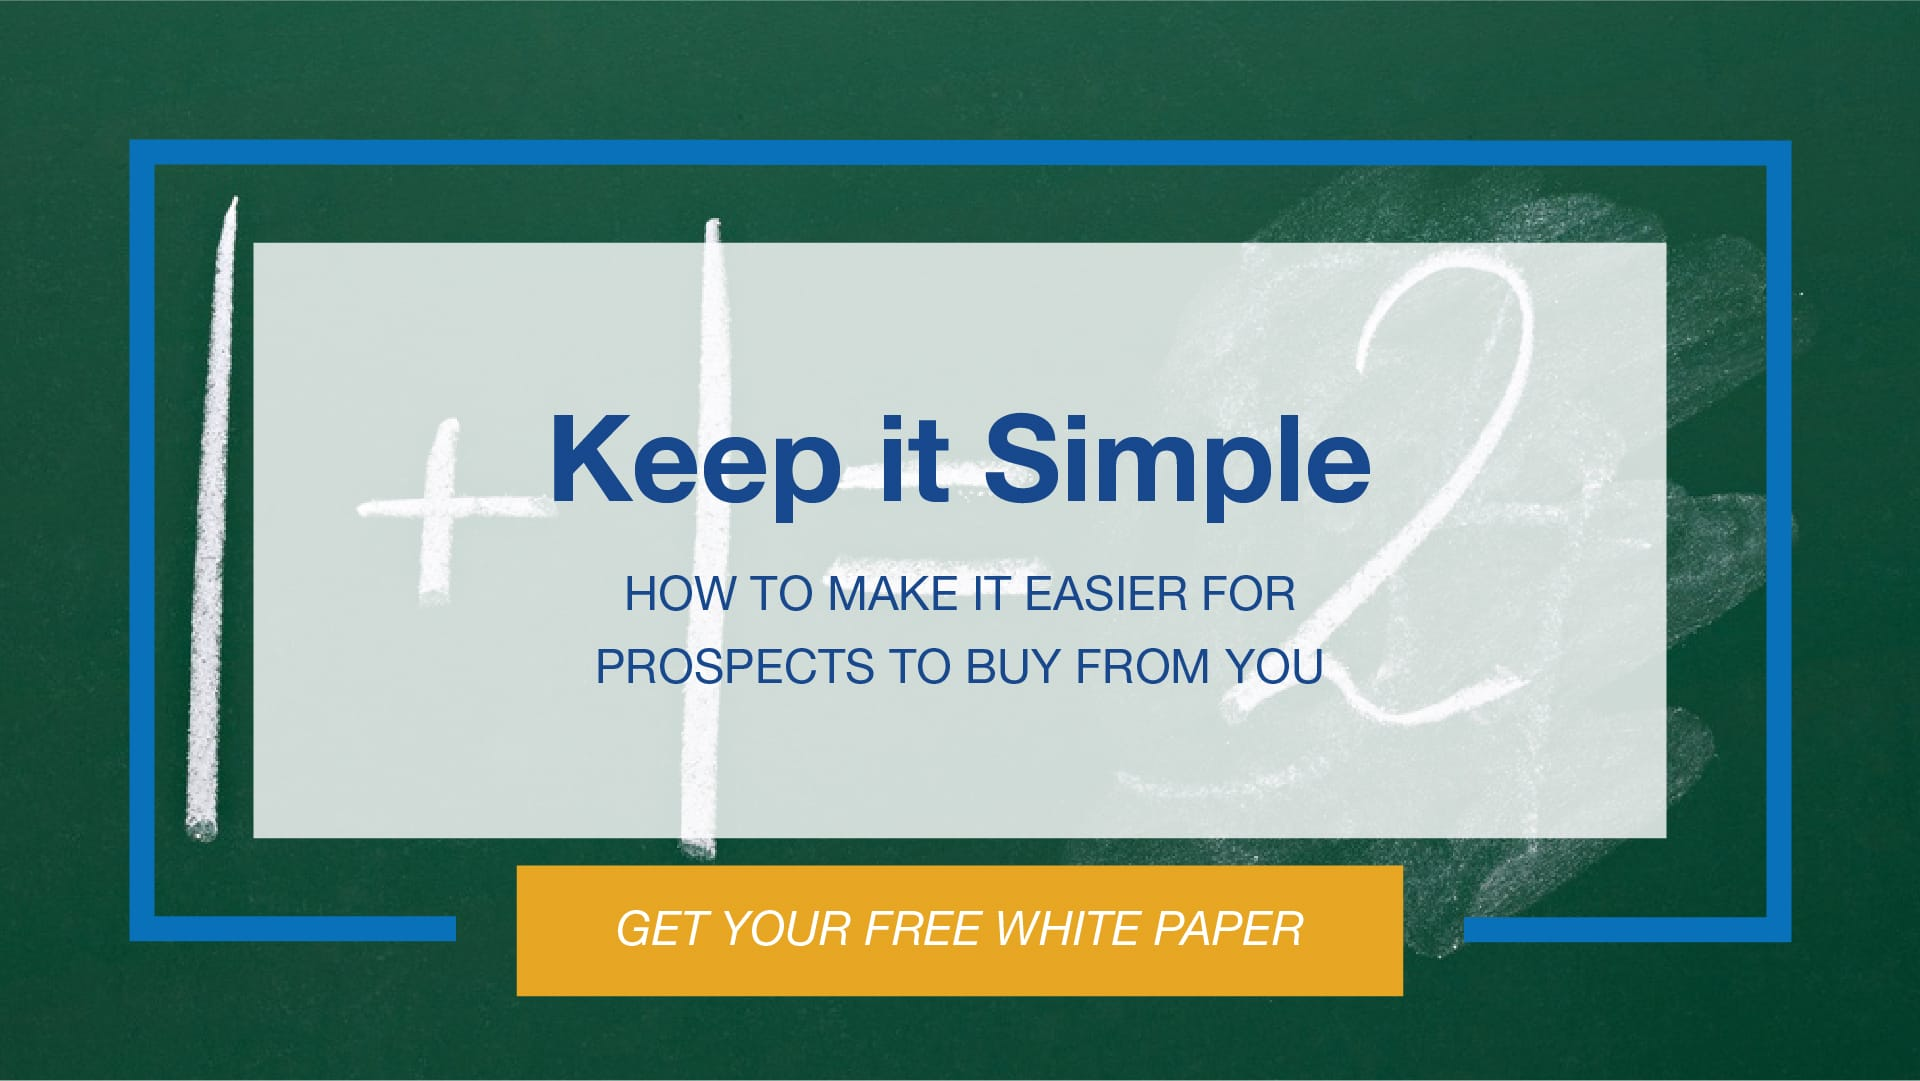 How to Make it Easier for Prospects to Buy From You